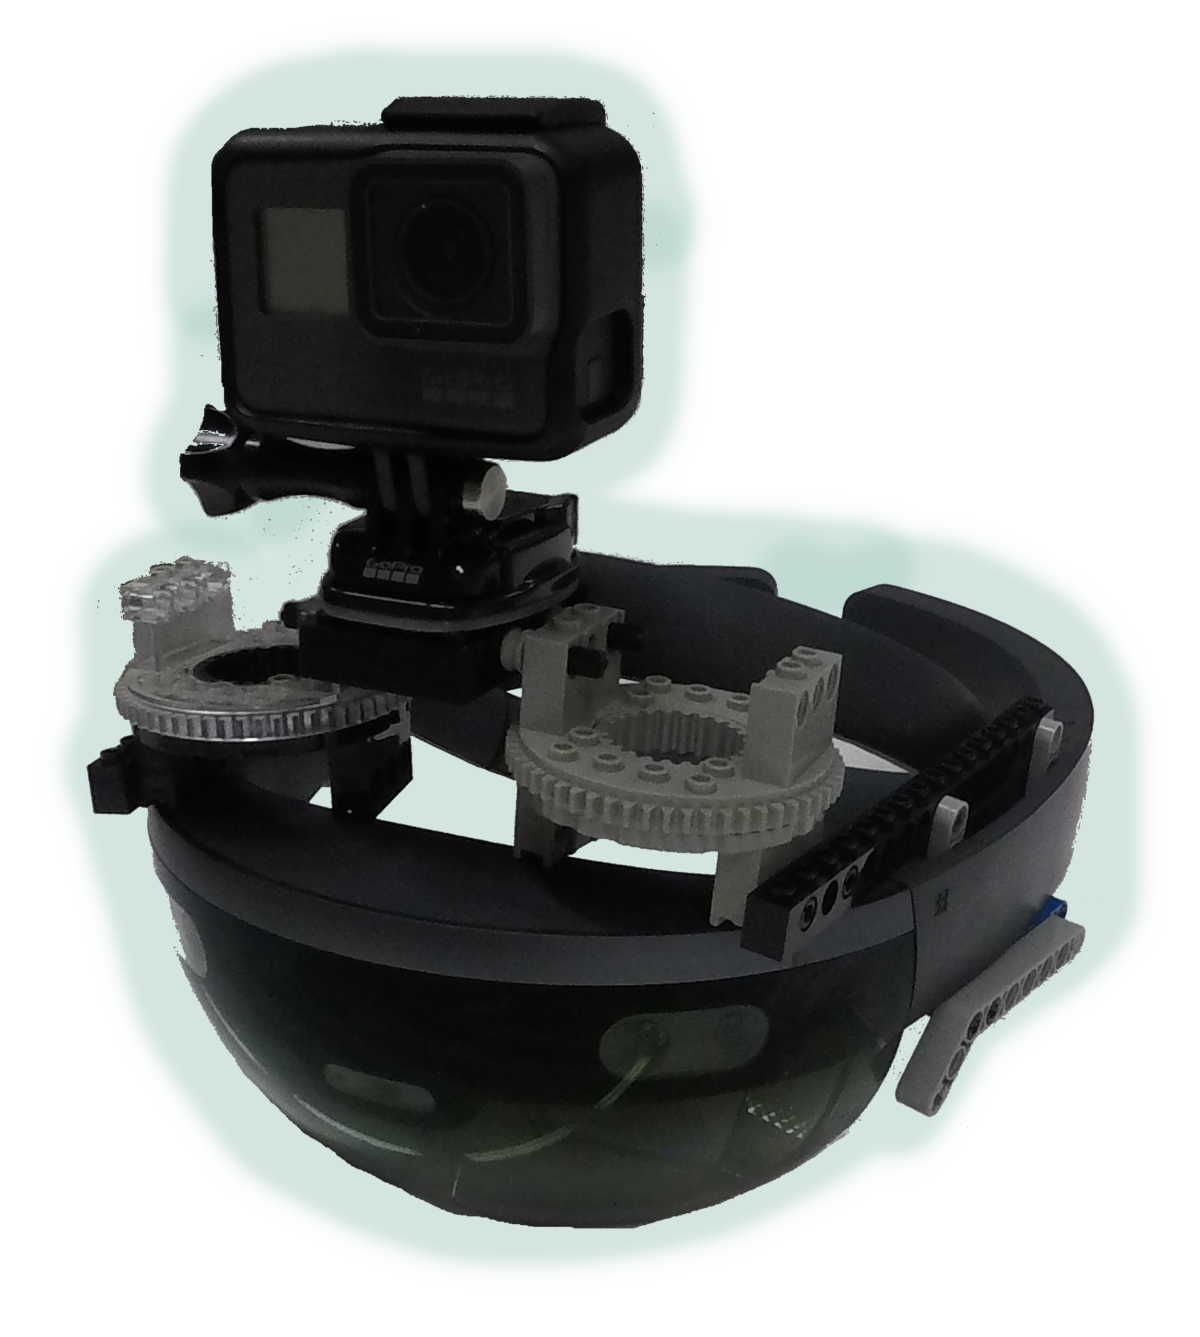 HoloLens with GoPro mounted on top